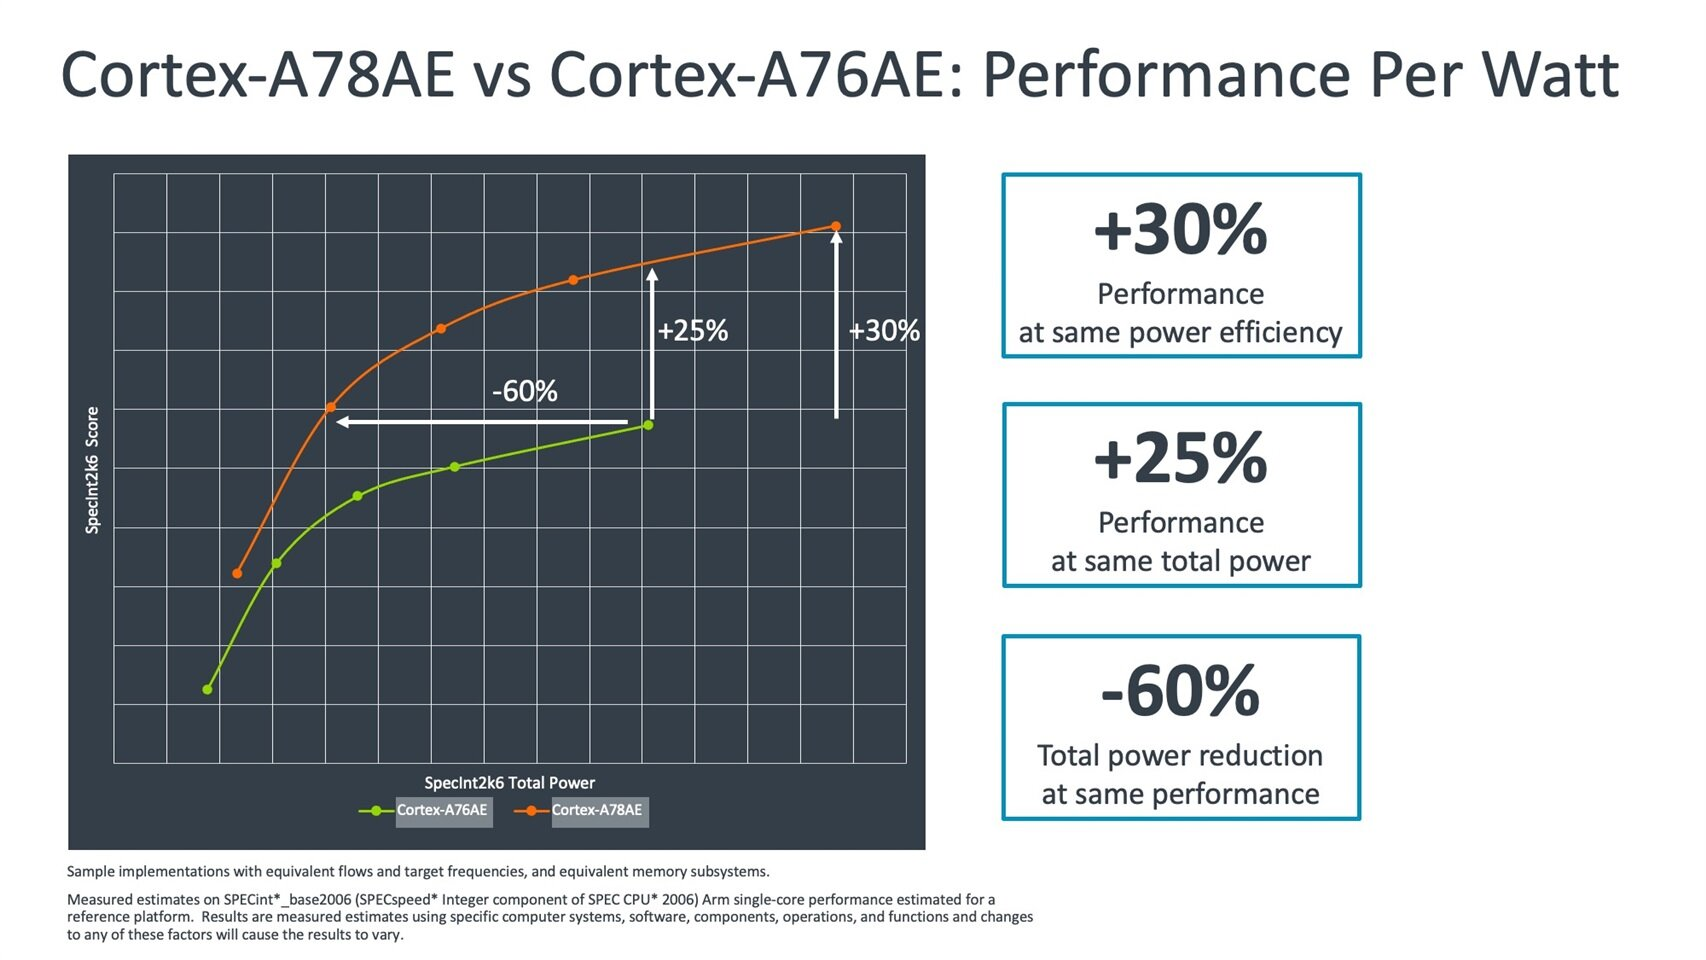 Cortex-A78AE vs Cortex-A76AE Performance Per Watt